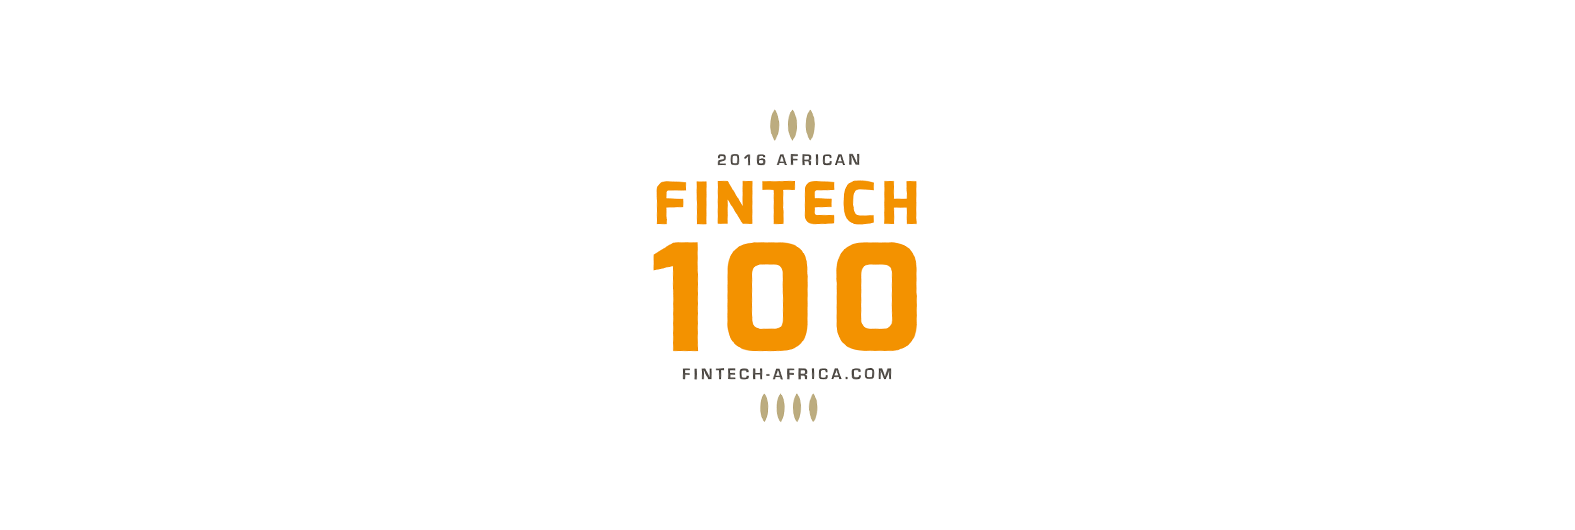 Merchant Capital; one of the African FinTech 100 companies